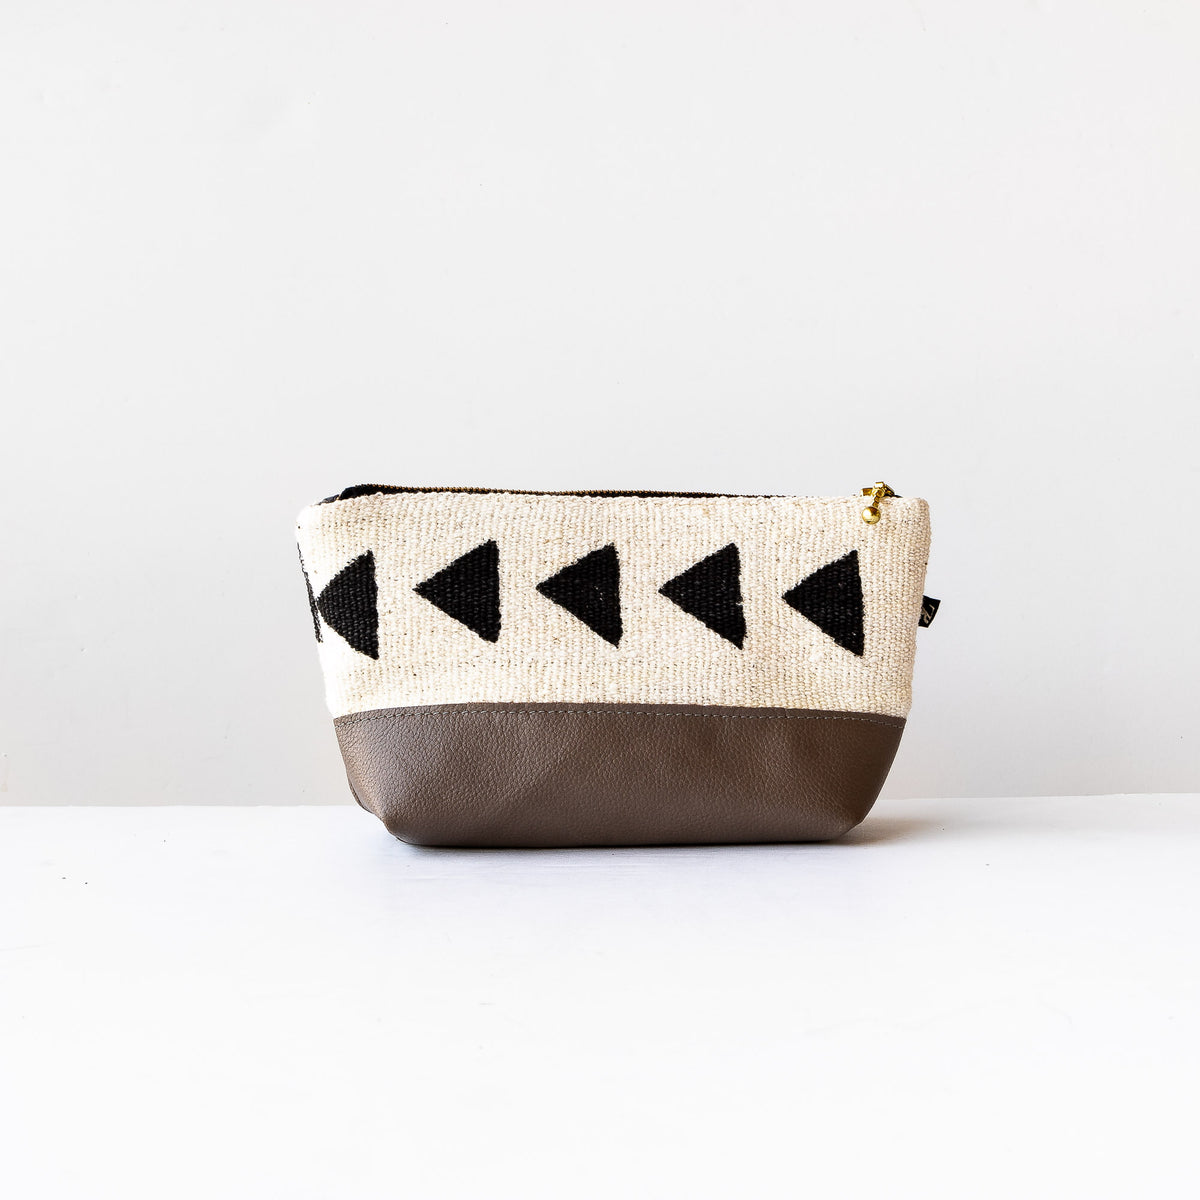 La Trousse - Handcrafted Leather & African Bogolan Fabric Case - Sold by Chic & Basta